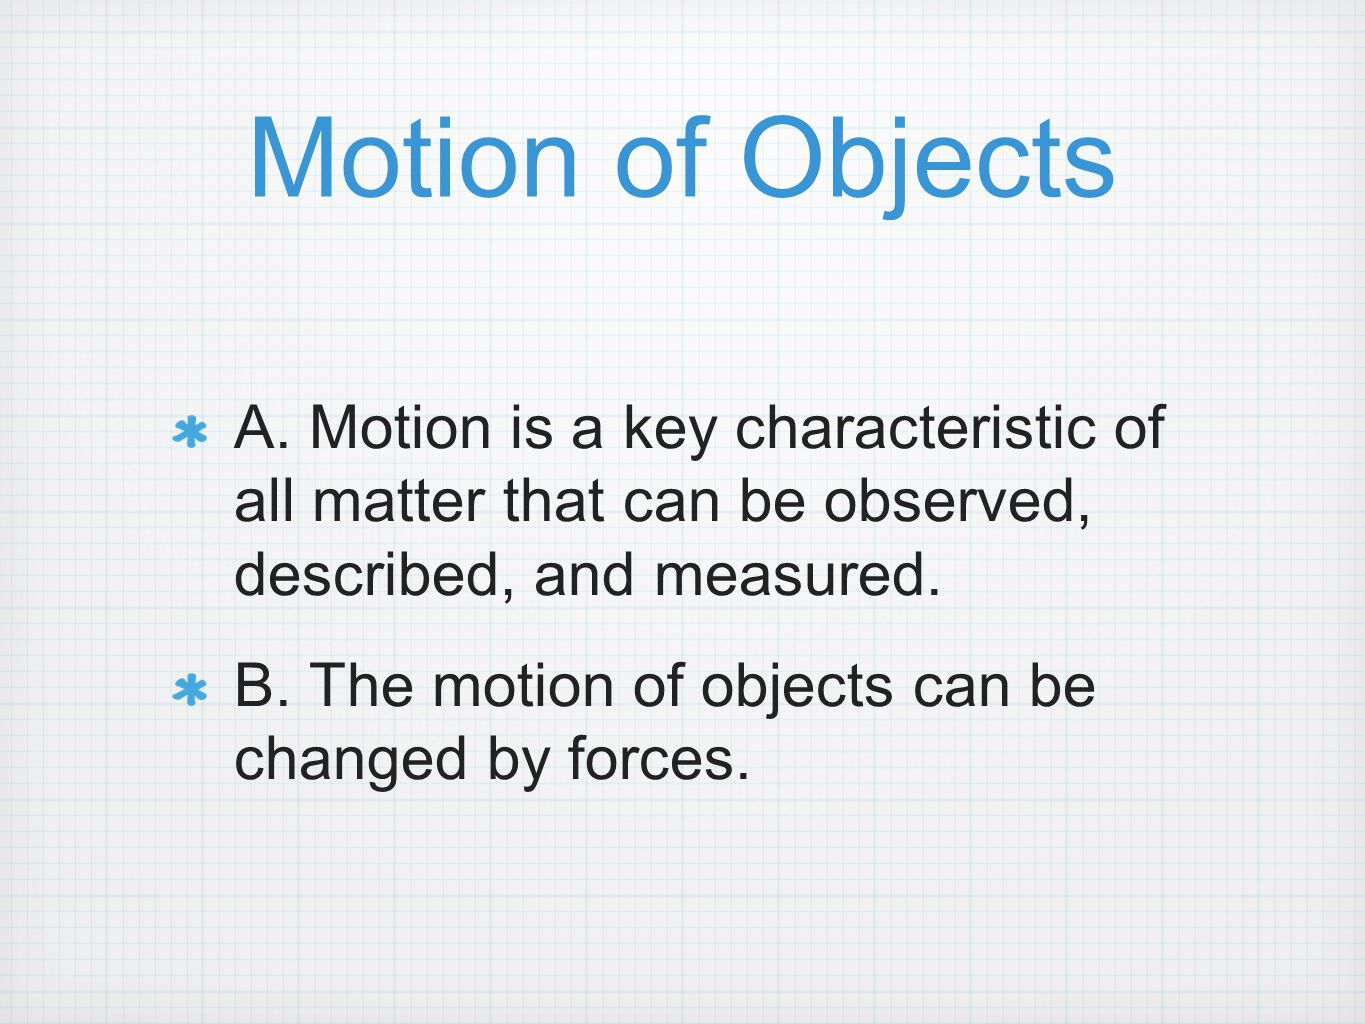 Motion of Objects A. Motion is a key characteristic of all matter that can be observed, described, and measured.